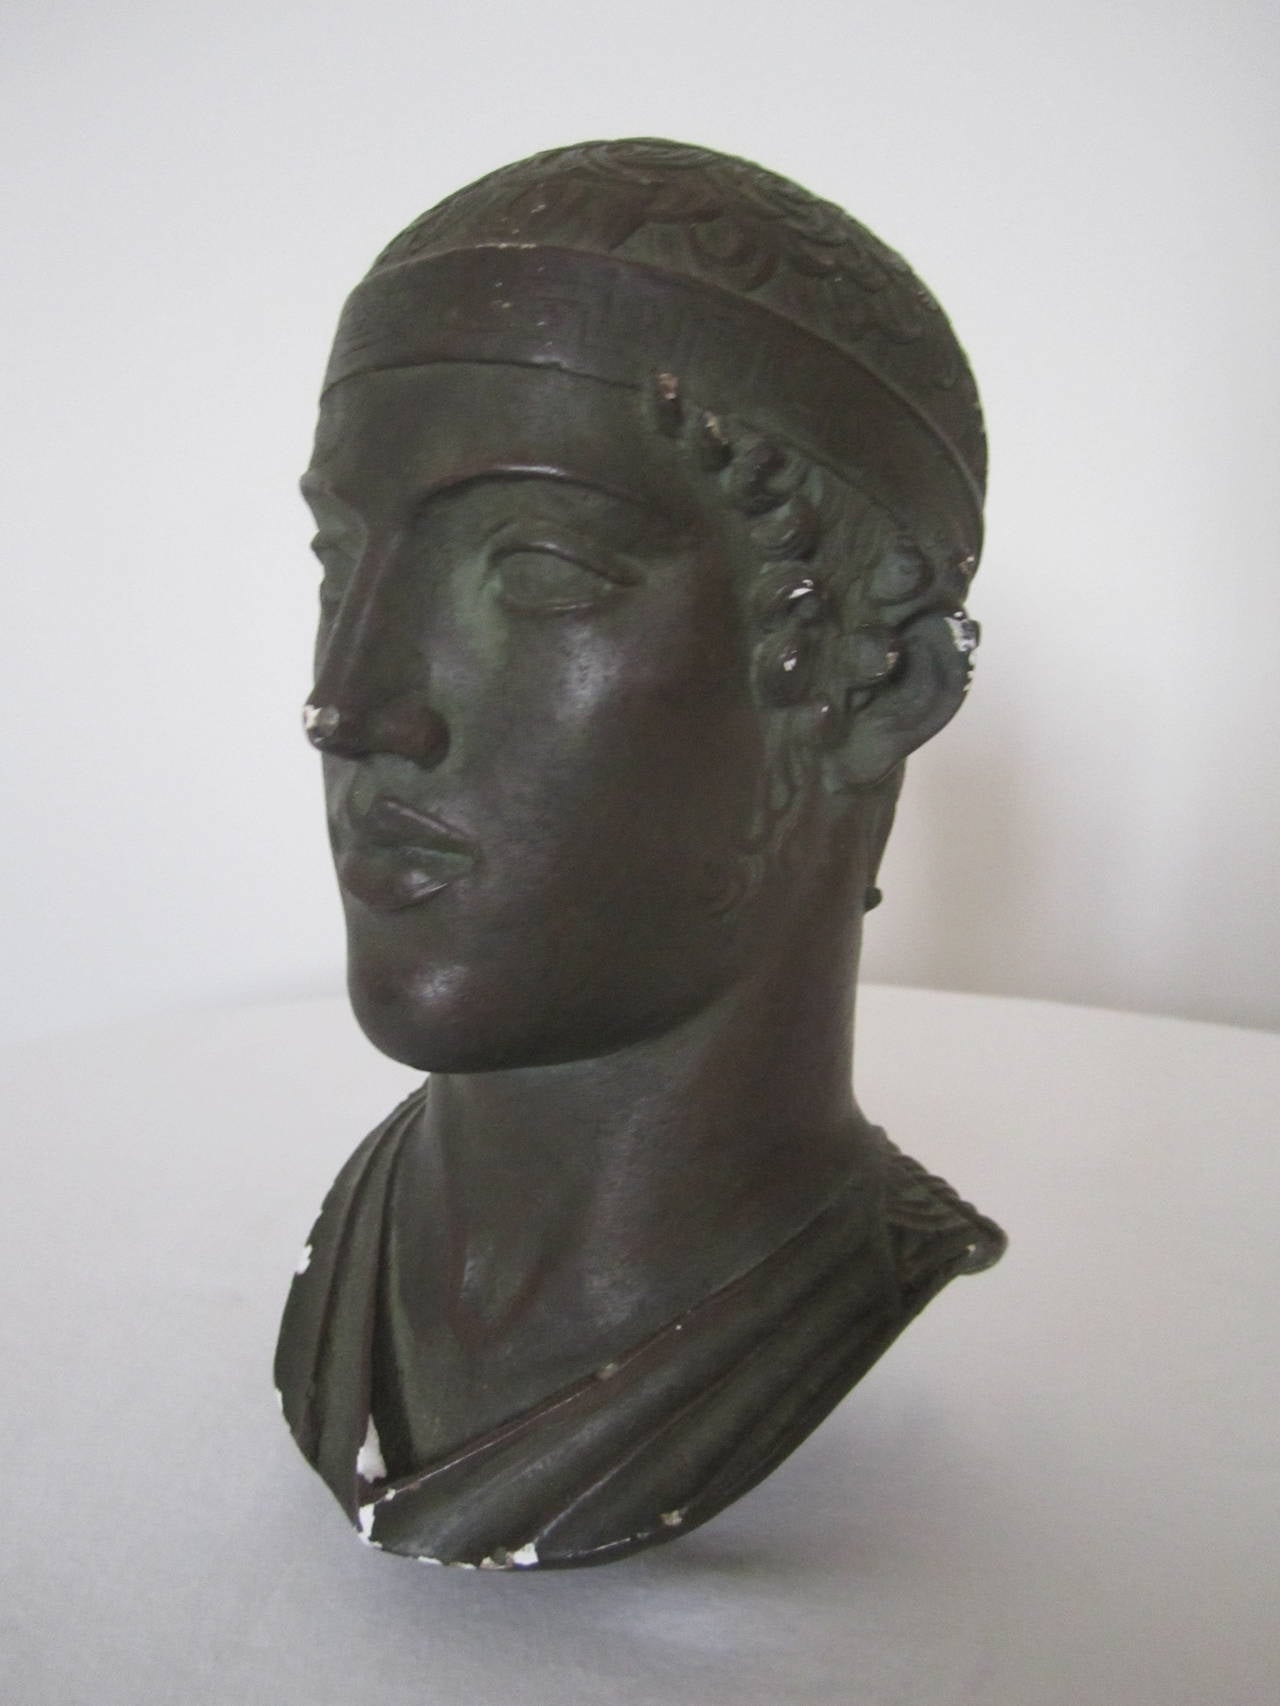 Greek or Roman Head Bust Sculpture, 1965 For Sale 5